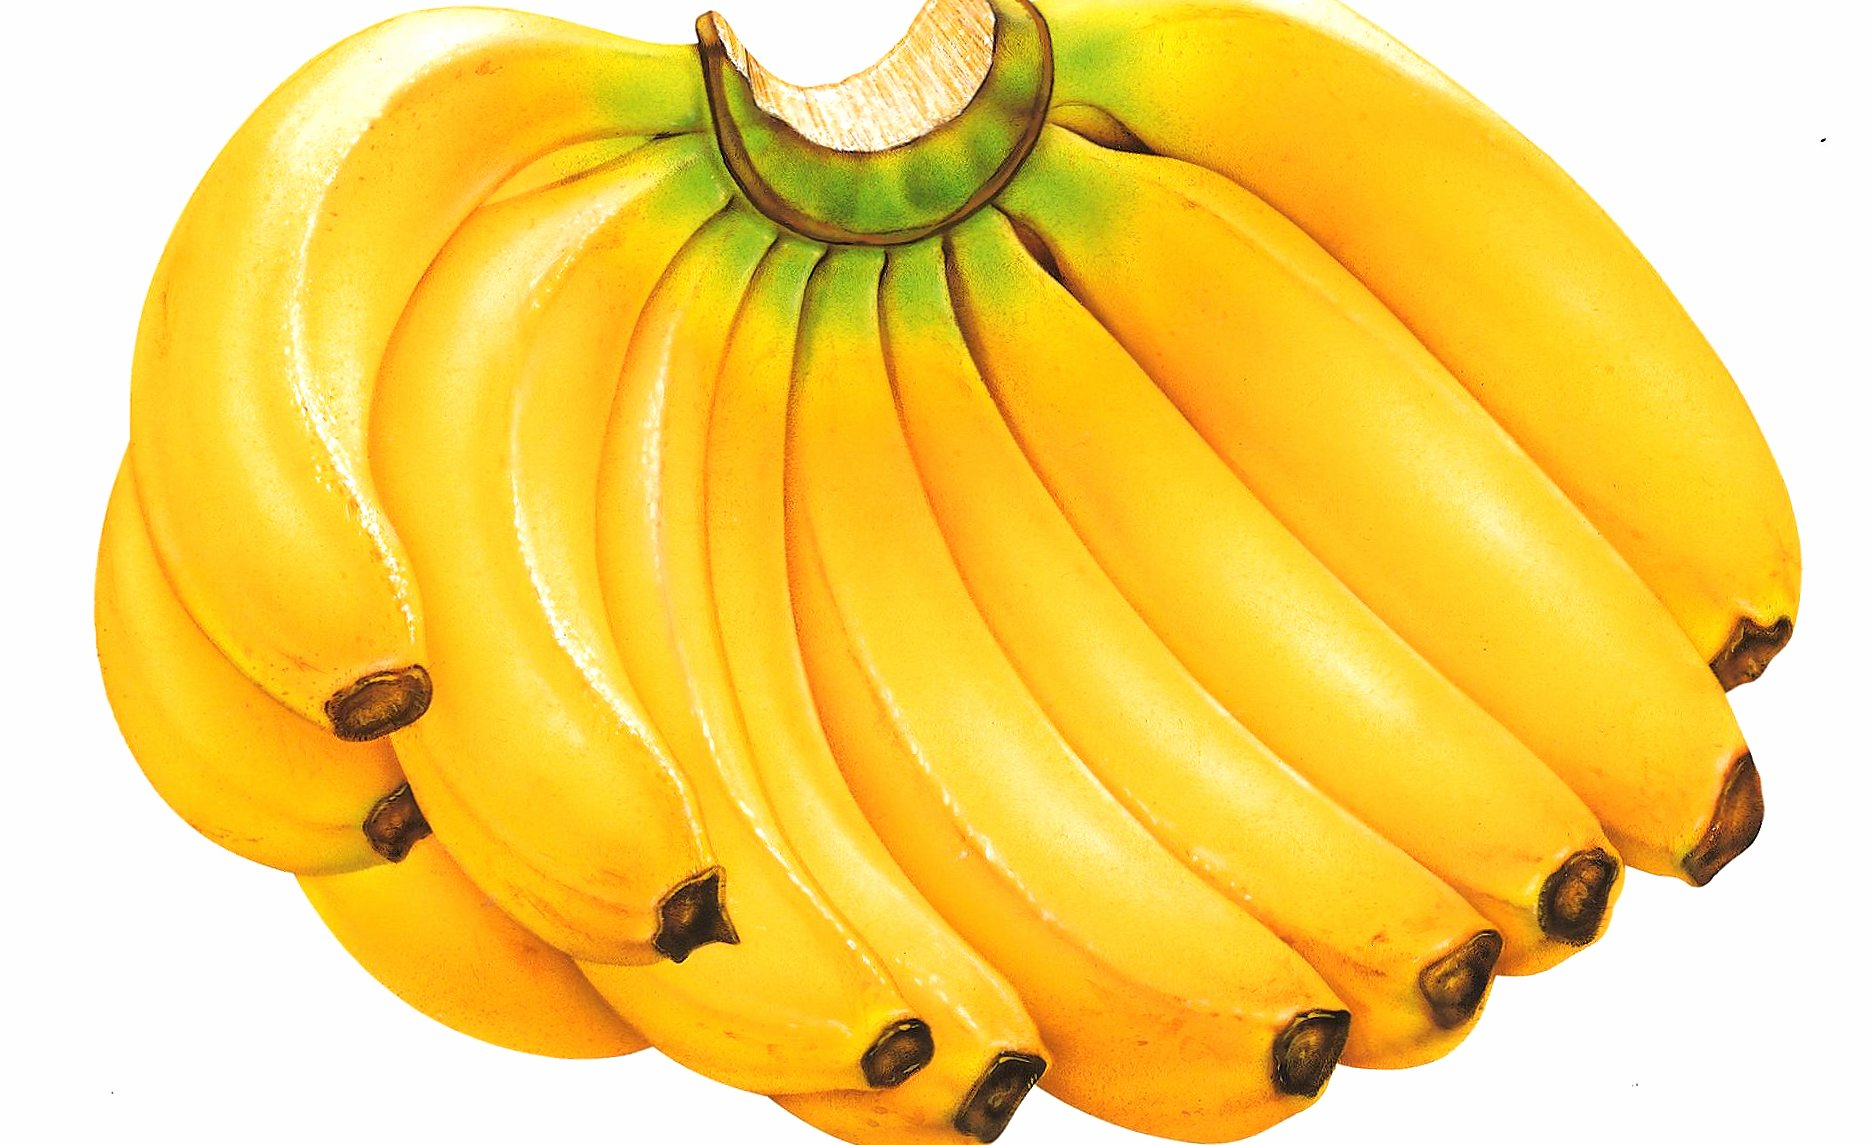 Bunch of bananas wallpapers HD quality